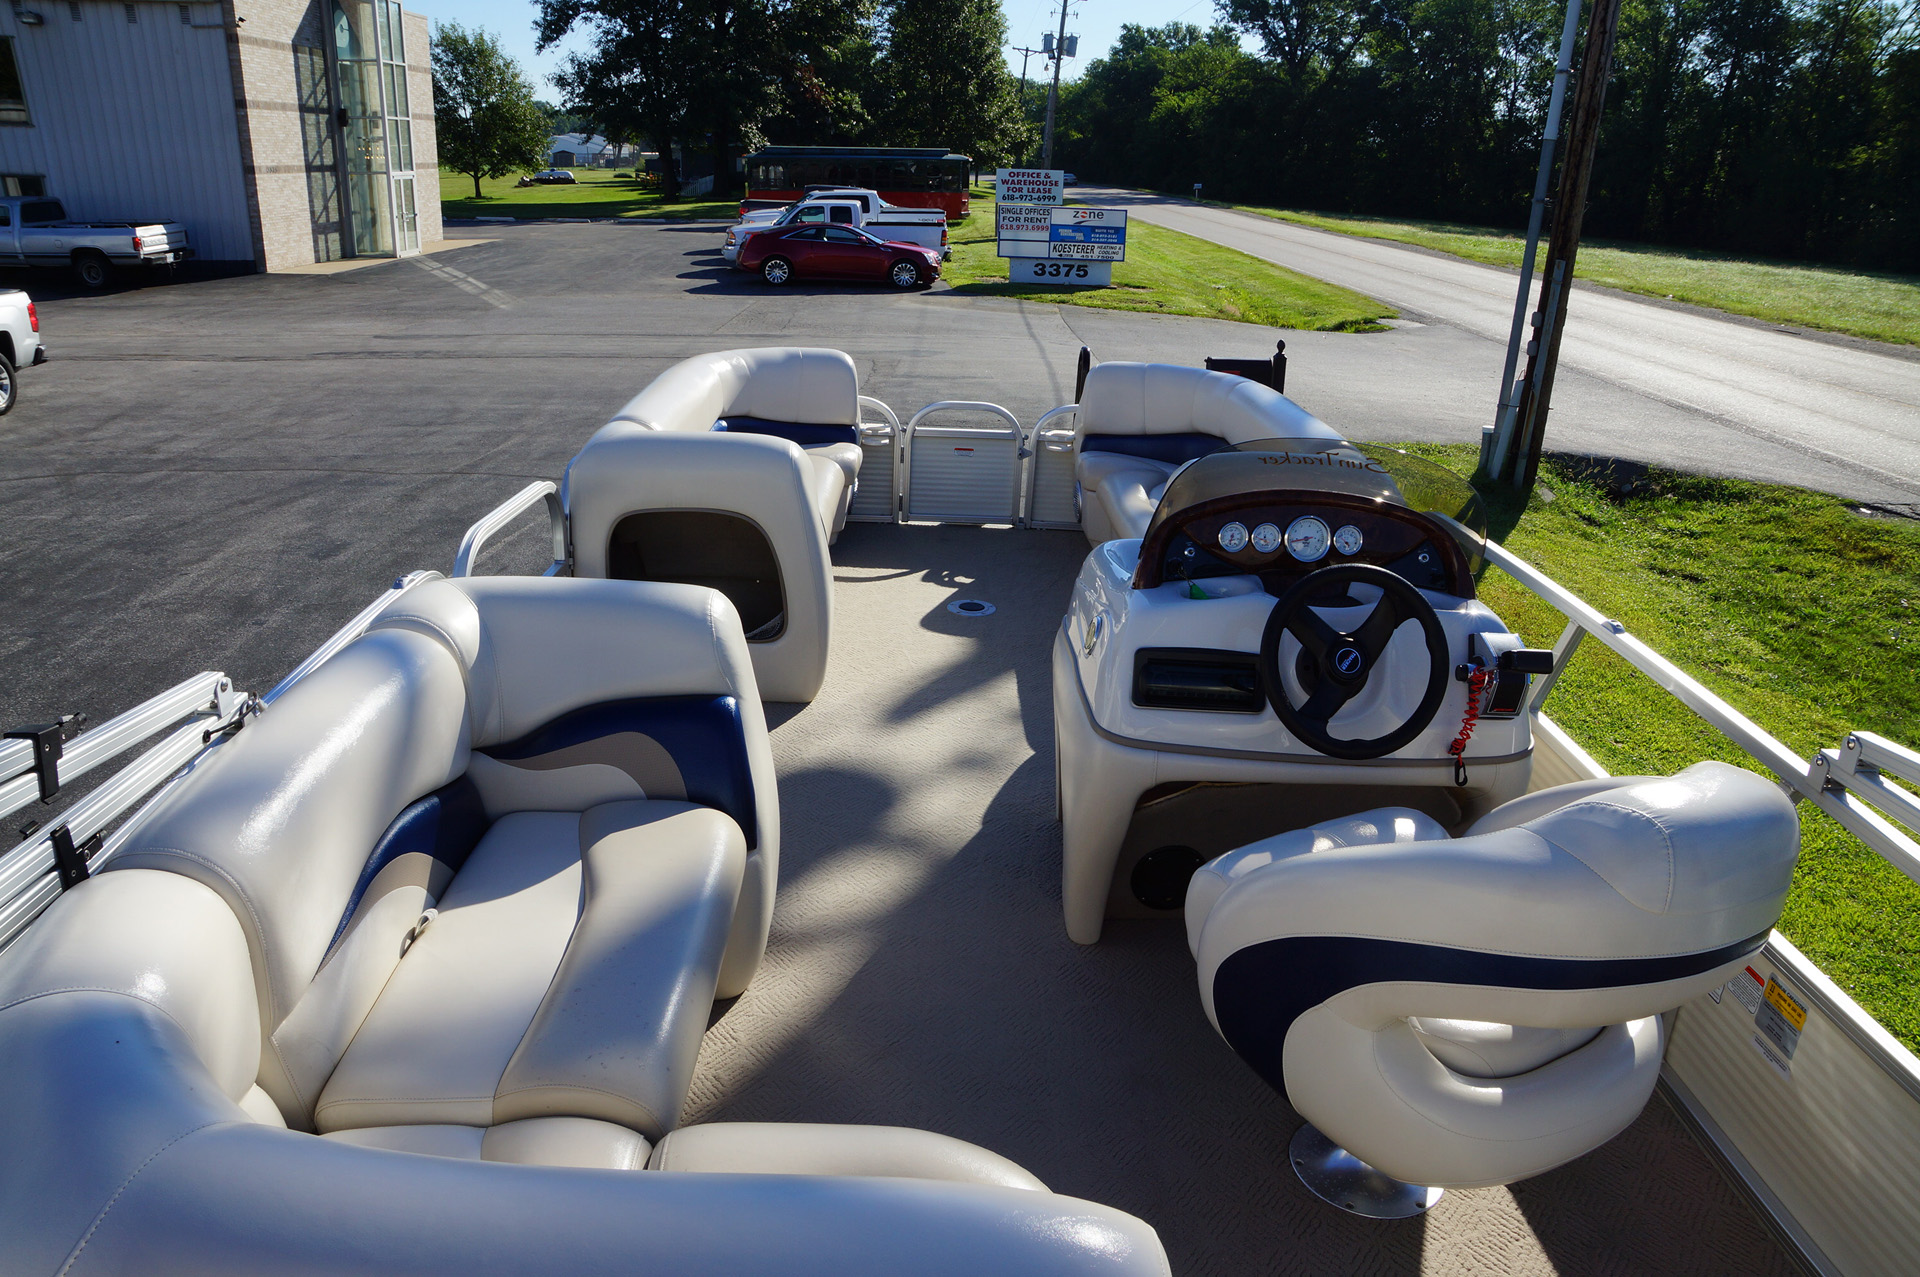 2010-tracker-party-barge-21-15